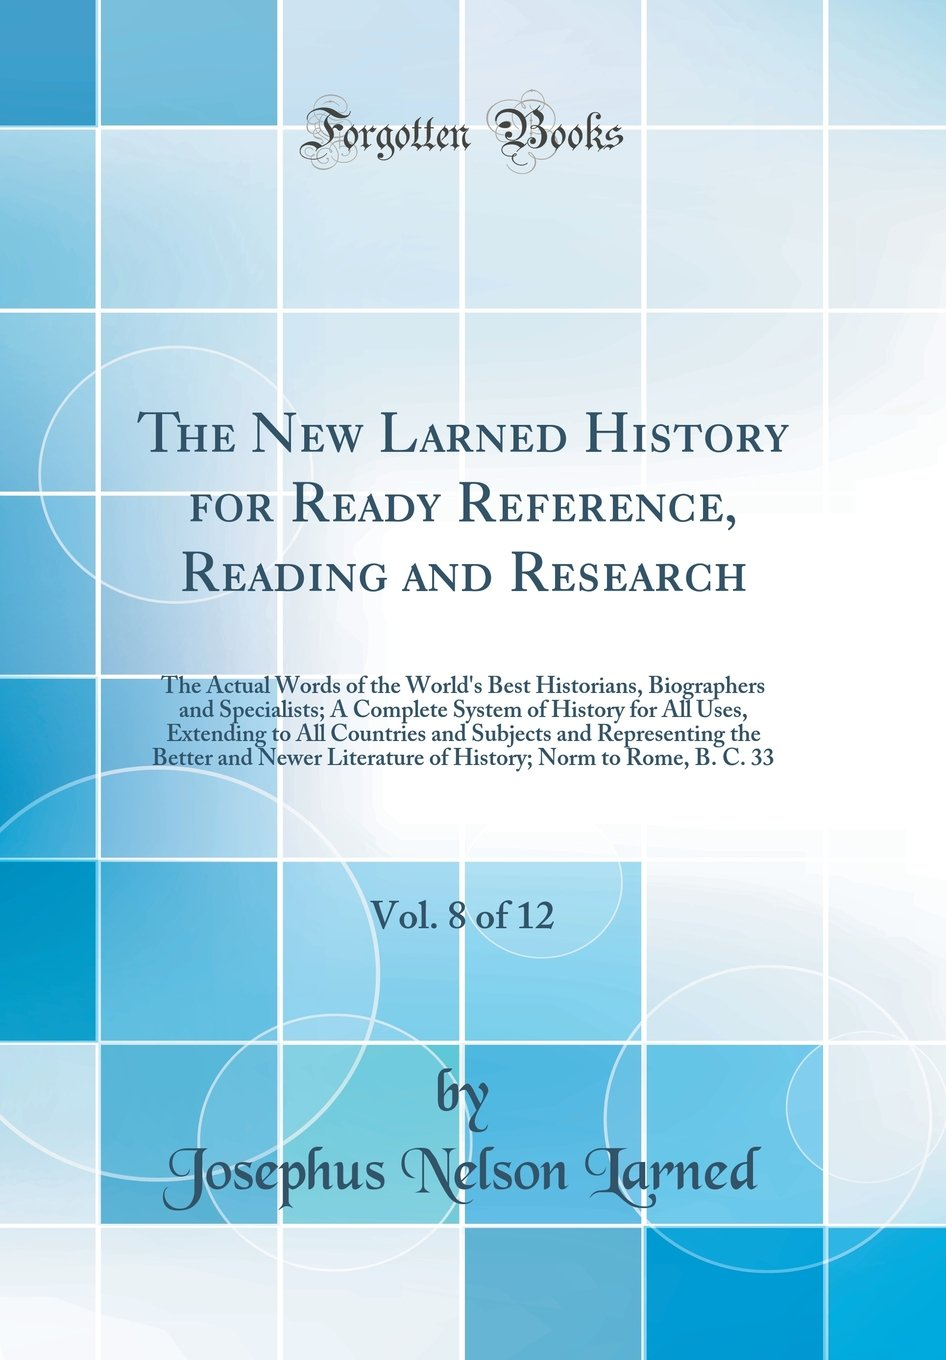 Download The New Larned History for Ready Reference, Reading and Research, Vol. 8 of 12: The Actual Words of the World's Best Historians, Biographers and ... to All Countries and Subjects and Representi ebook